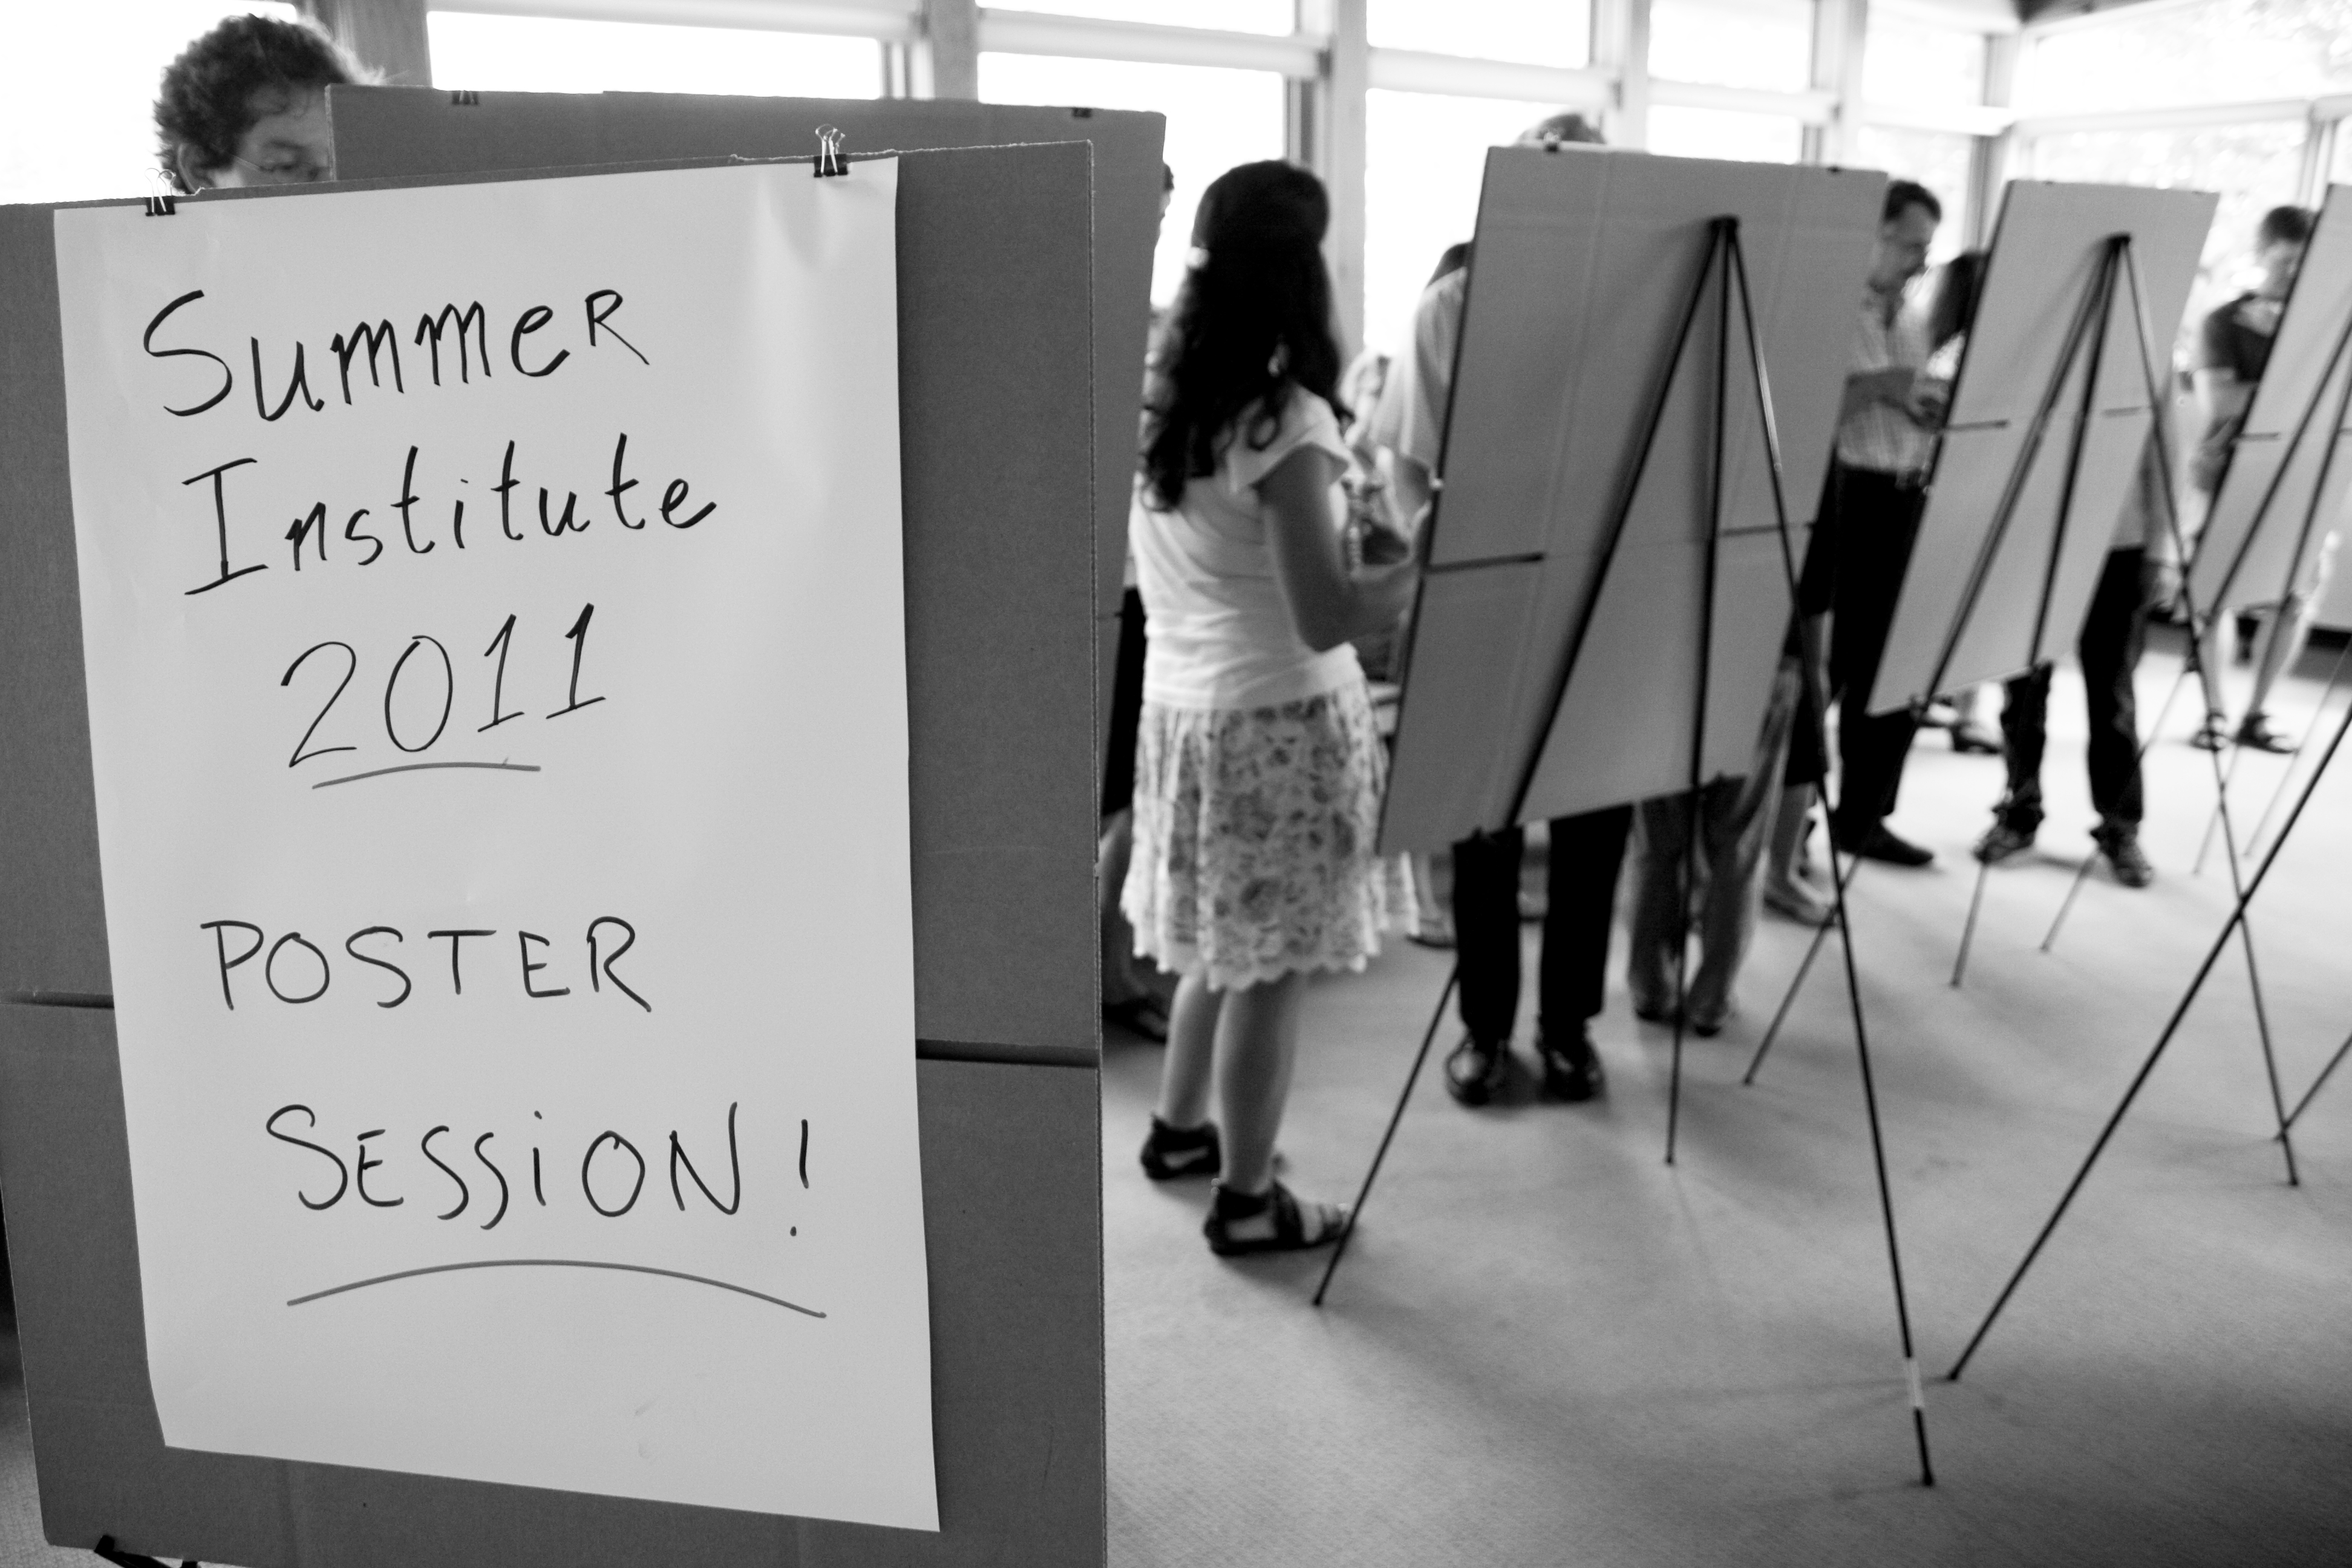 Picture of a poster session with posters on easels